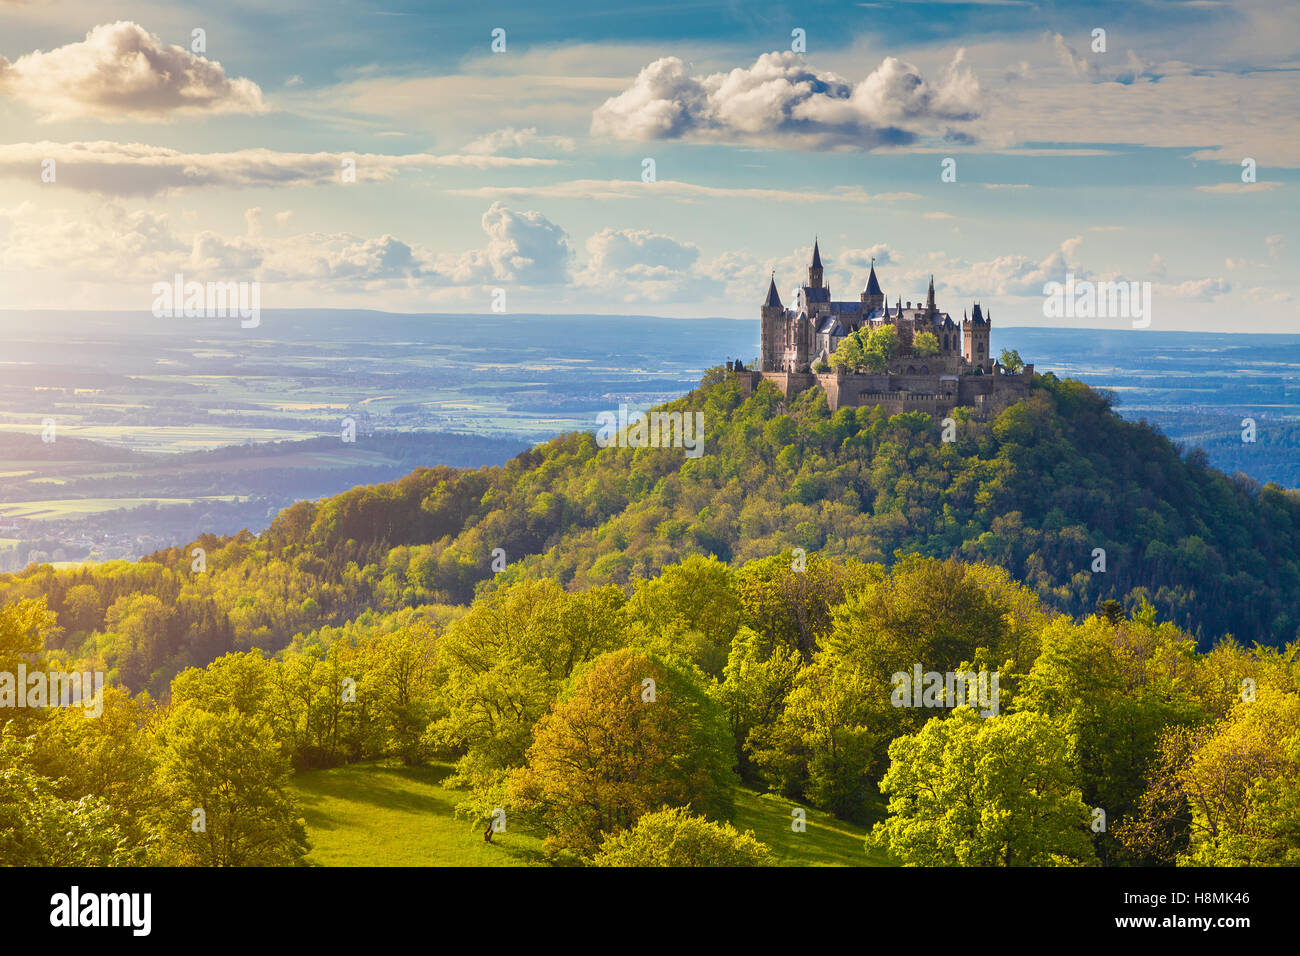 Classic view of famous Hohenzollern Castle, one of Europe's most visited castles, at sunset, Baden-Wurttemberg, - Stock Image